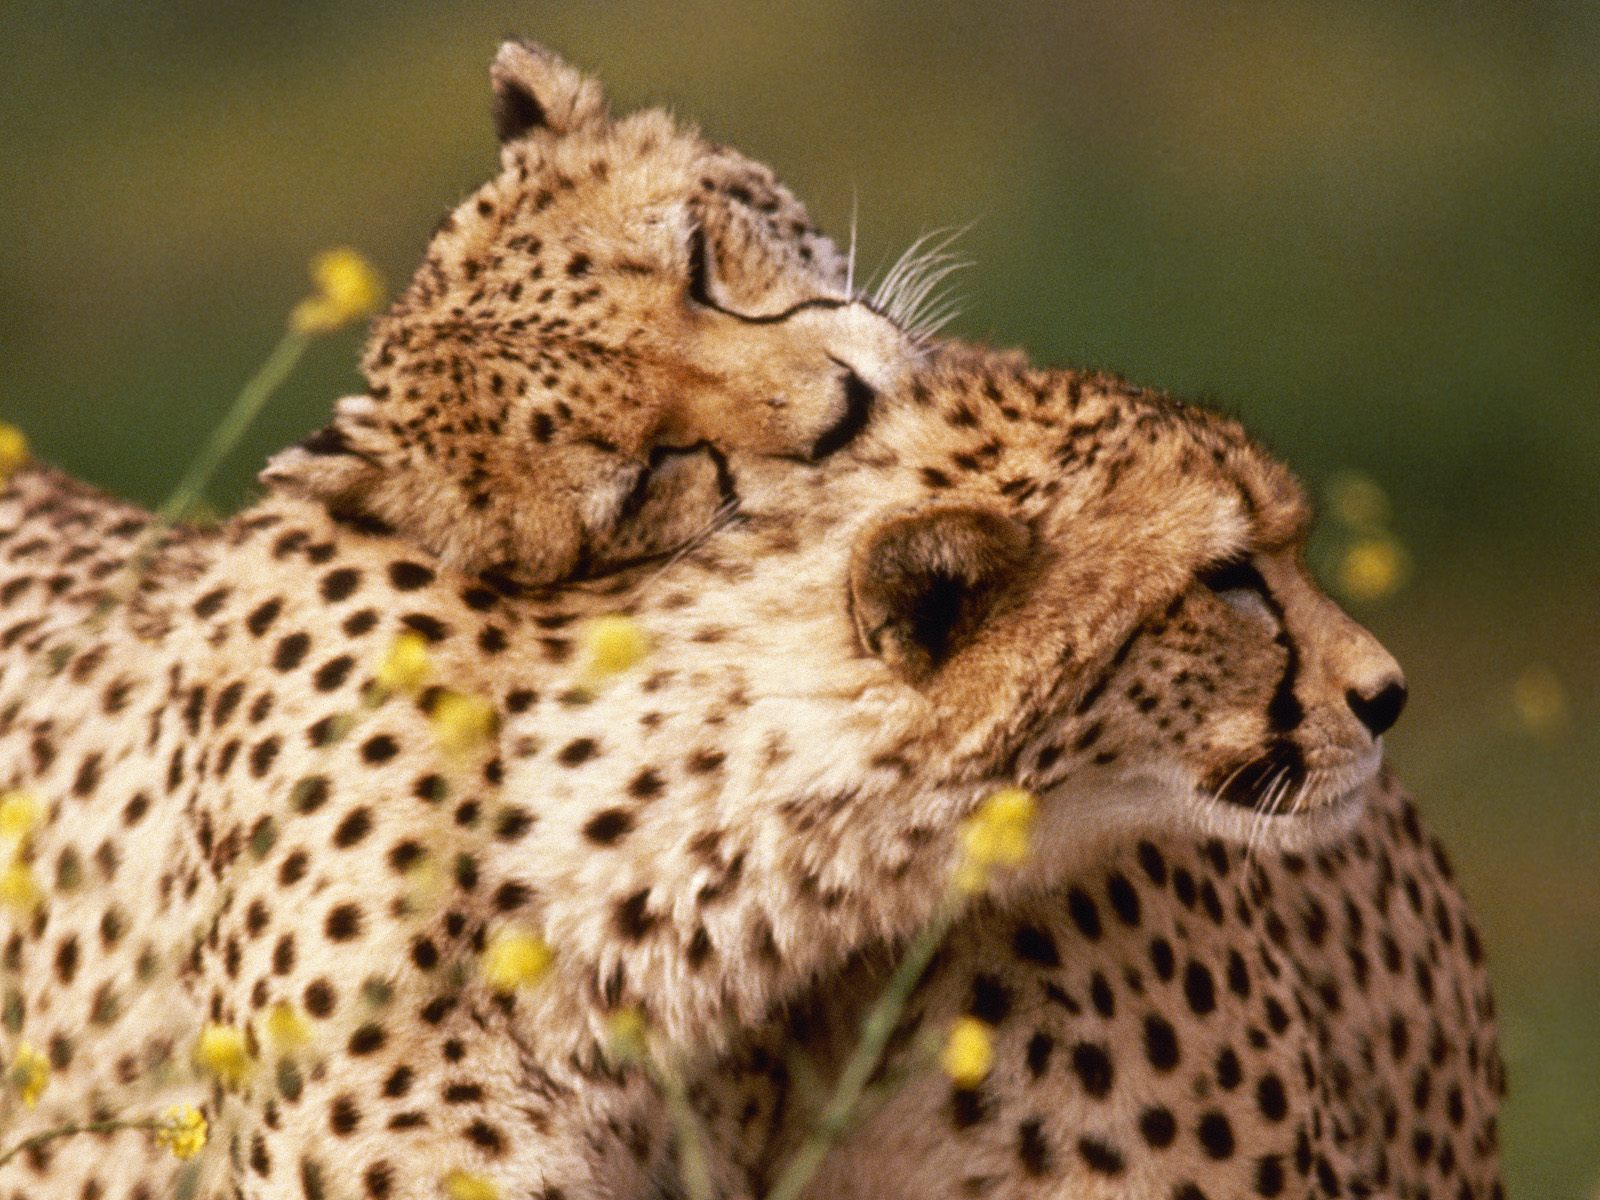 affectionate cheetahs wallpapers - Affectionate Cheetahs Wallpapers HD Wallpapers